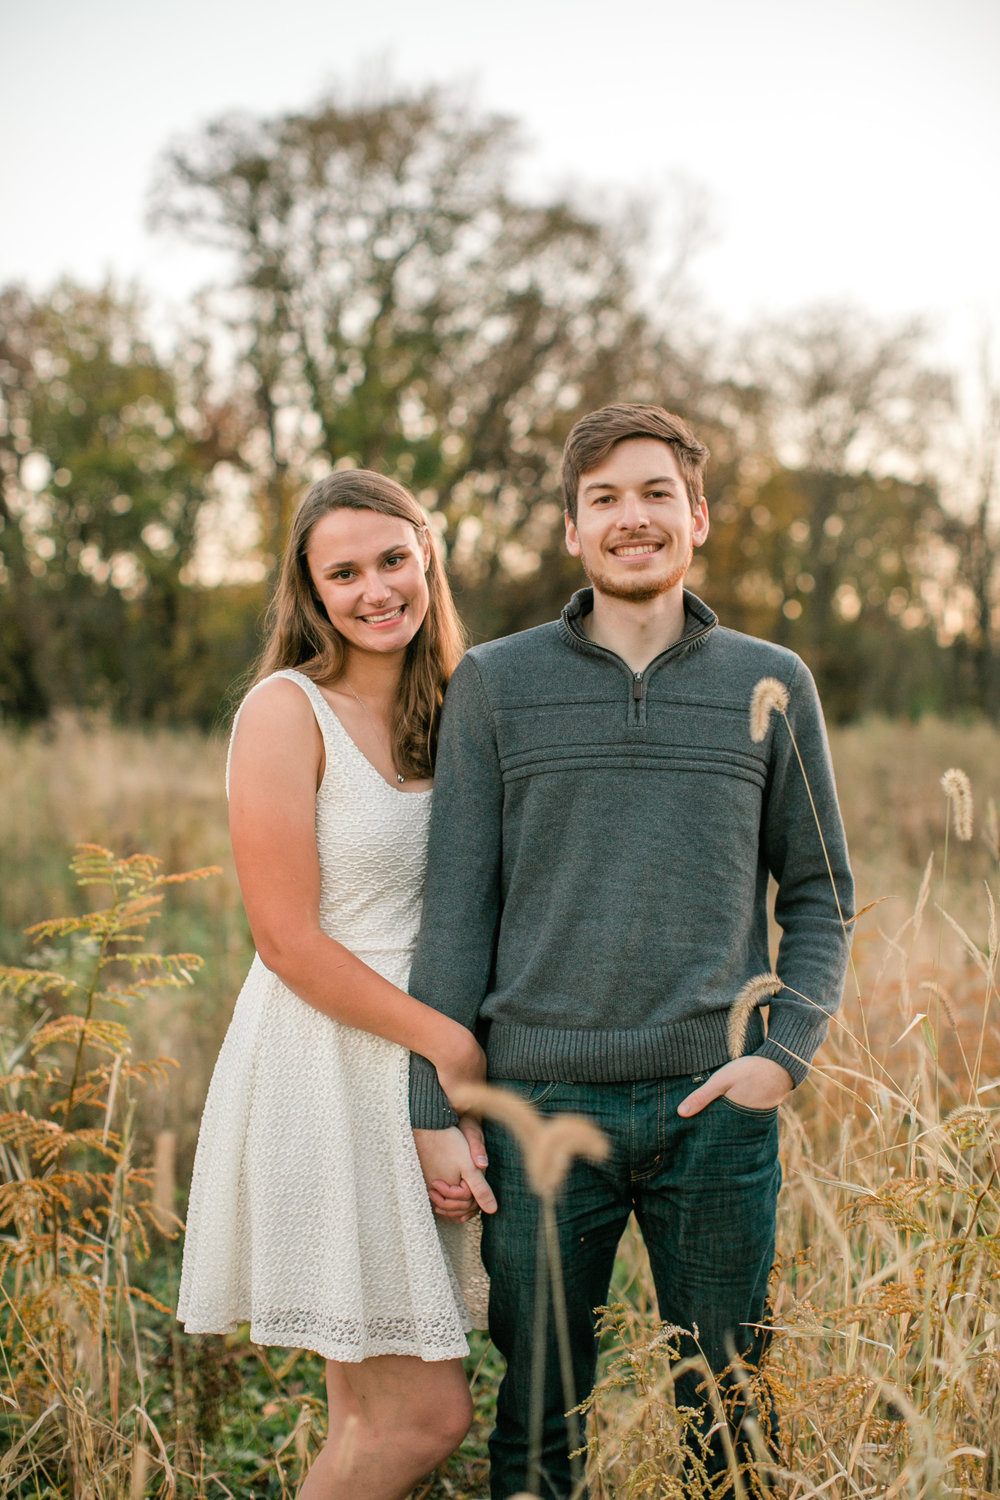 amazing beautiful wedding photos by amelia renee photography in des moines and iowa city